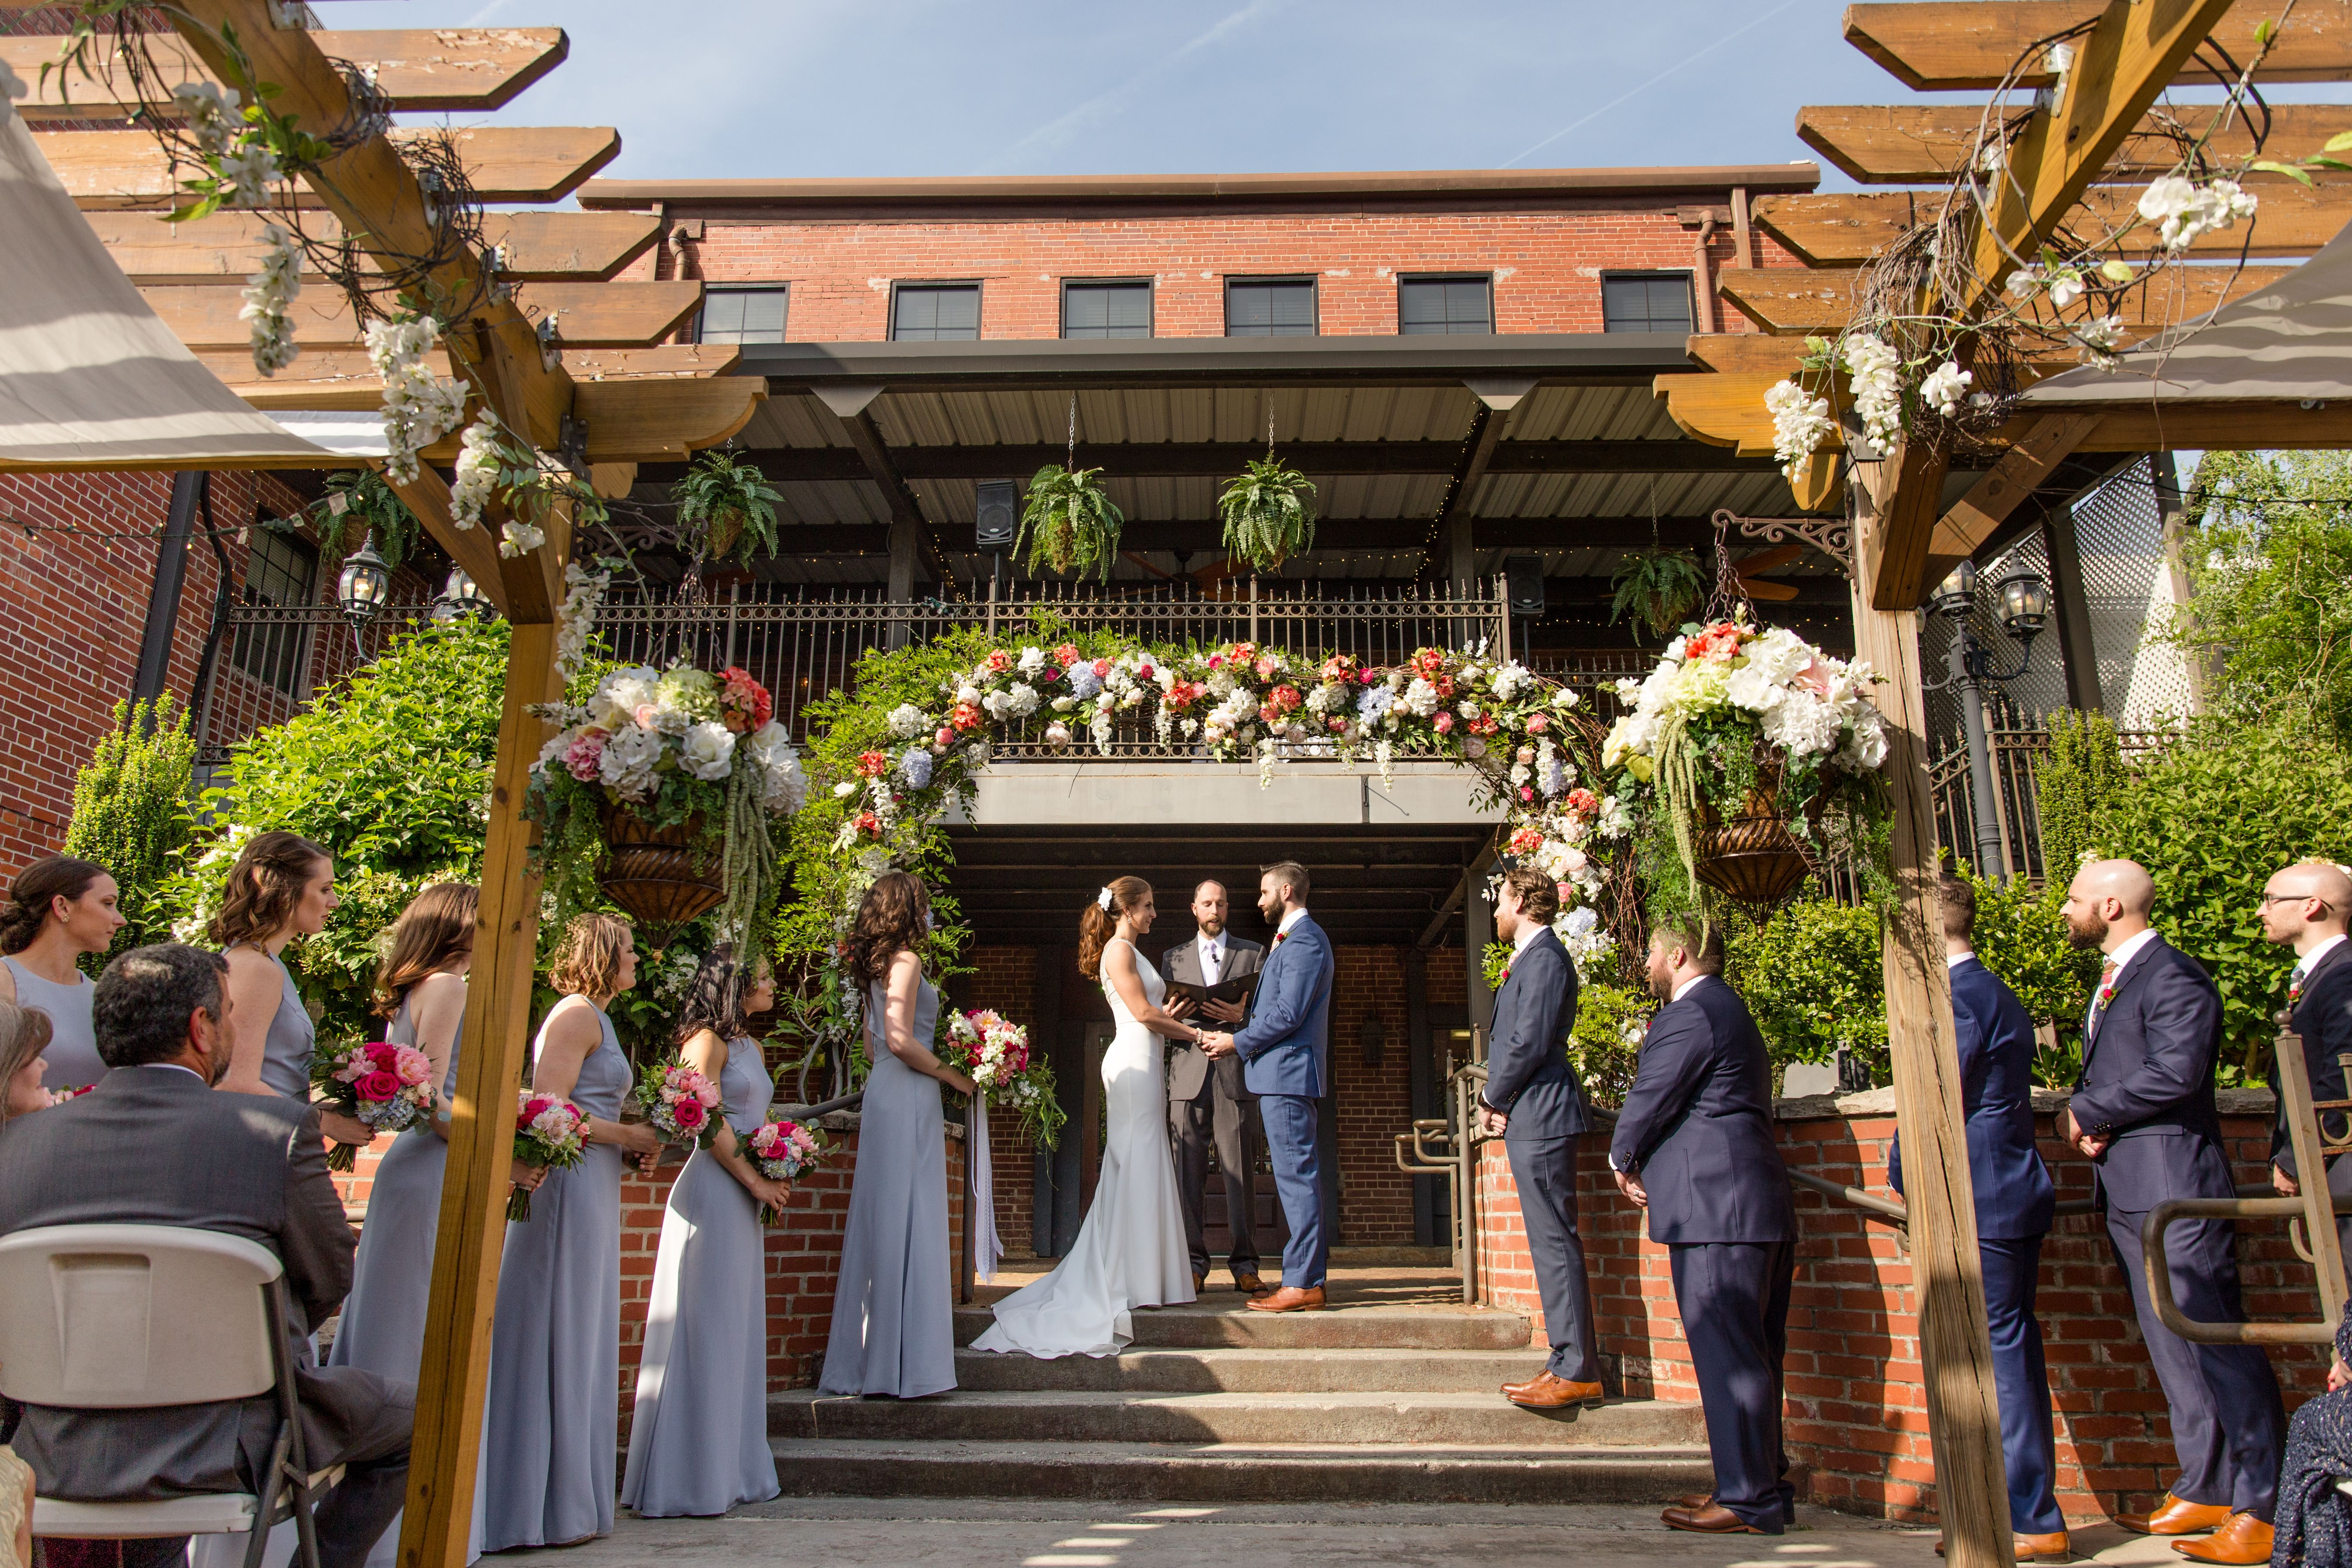 The Wedding Ceremony Site At The Conservatory At Waterstone Is A Gorgeous Intimate Ceremony Area Wedding Ceremony Sites Cute Wall Decor Picture Organization